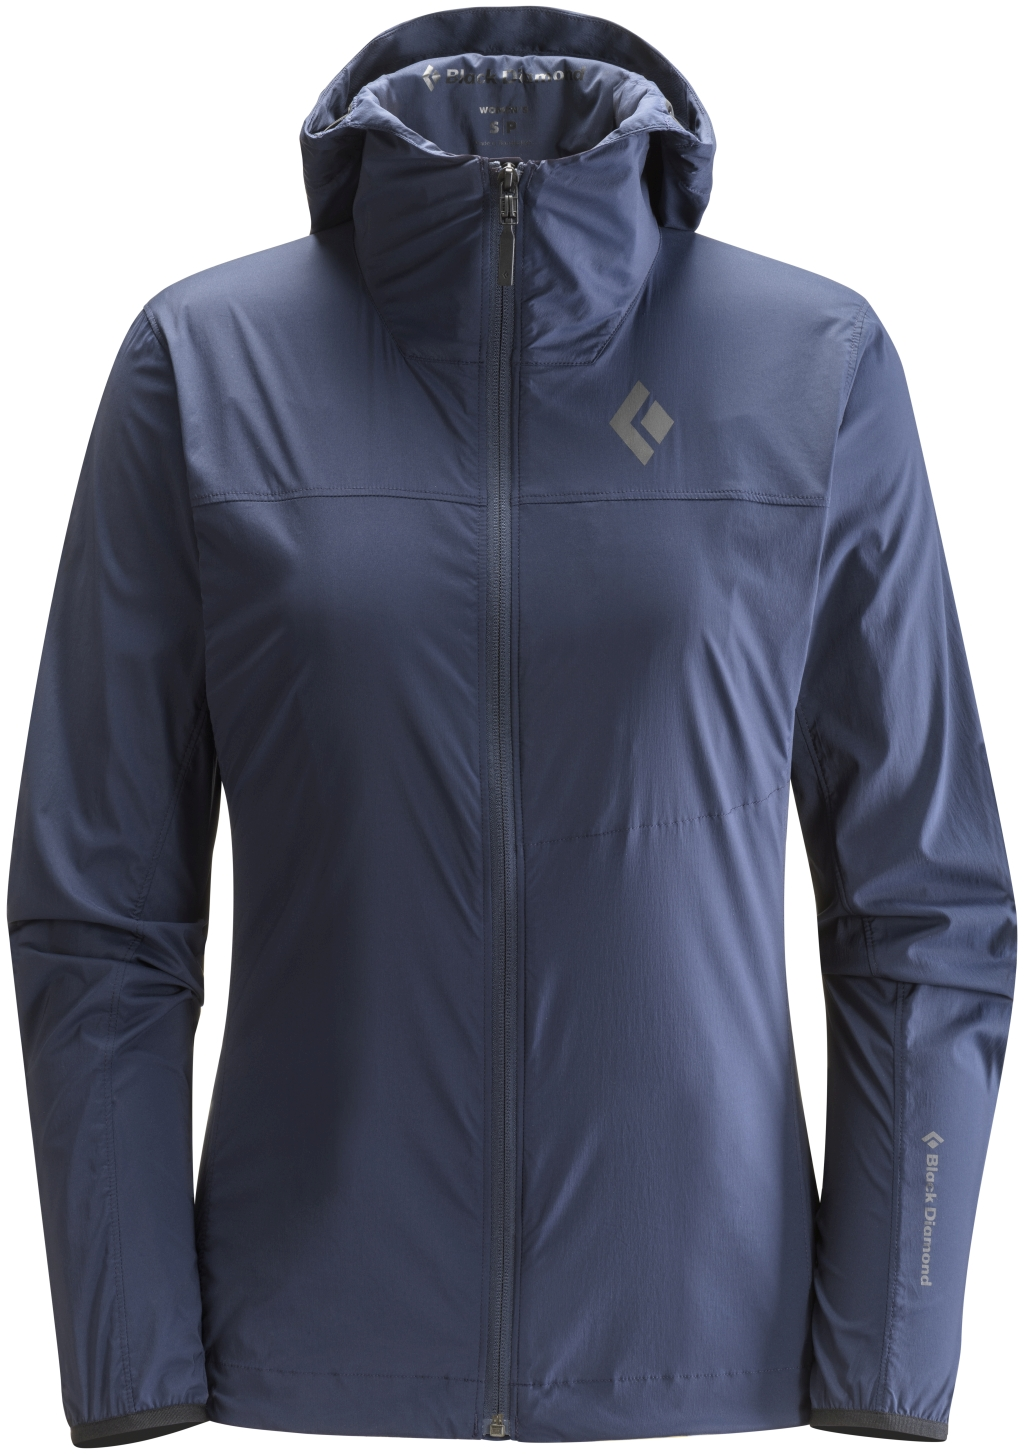 Black Diamond Alpine Start Hoody Women's Captain-30